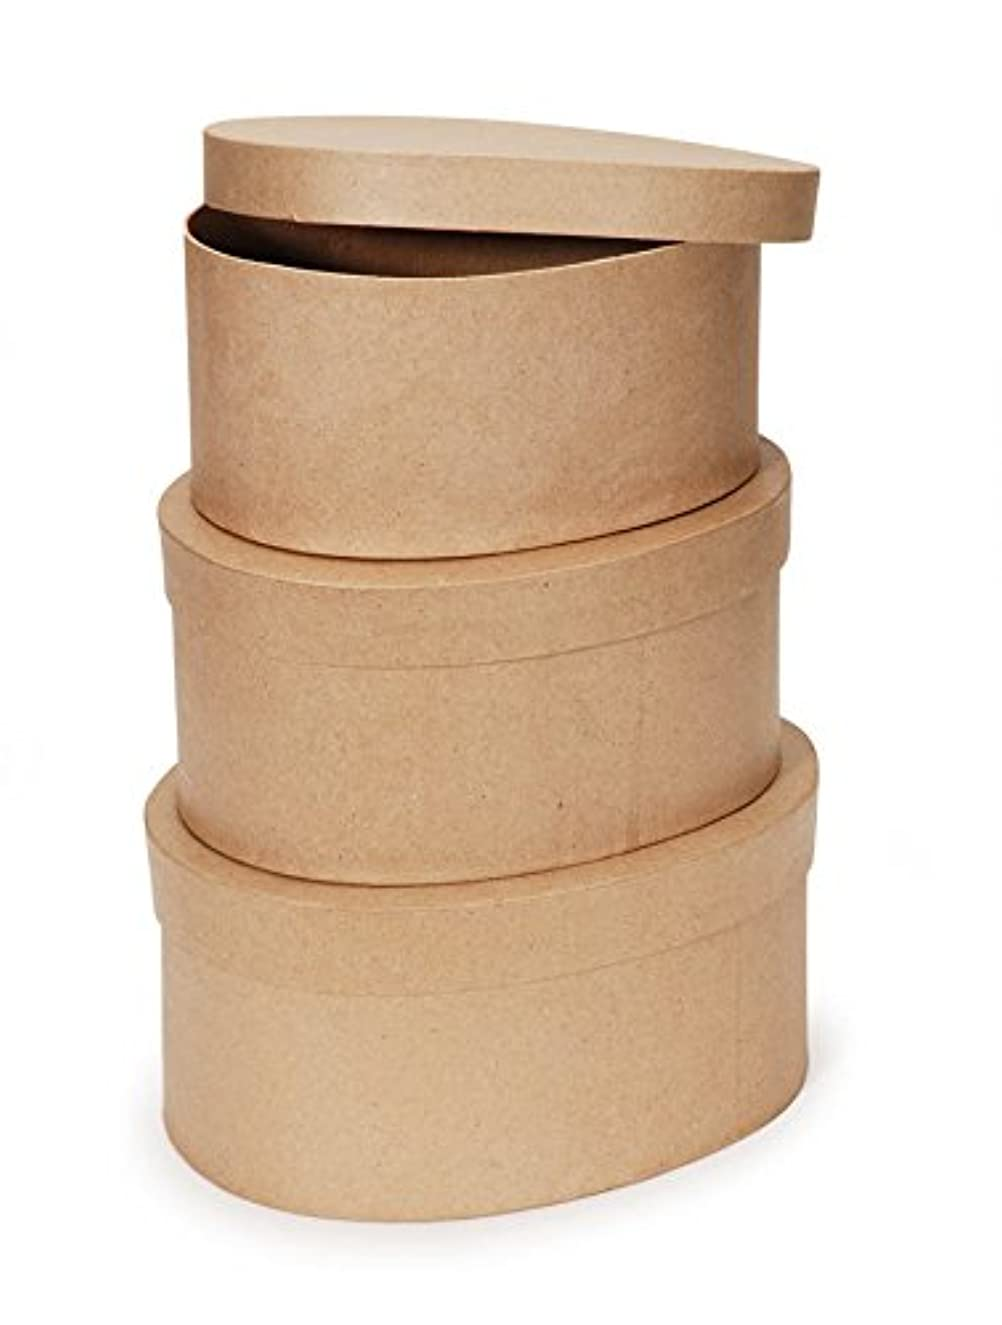 "Darice Paper Mache Craft Boxes – 8"", 9"" and 10"" Oval Boxes with Lids – Sturdy Boxes Come Nested Inside Each Other – Perfect for Decorating – Create Card Boxes, Centerpieces and More, Set of 3"